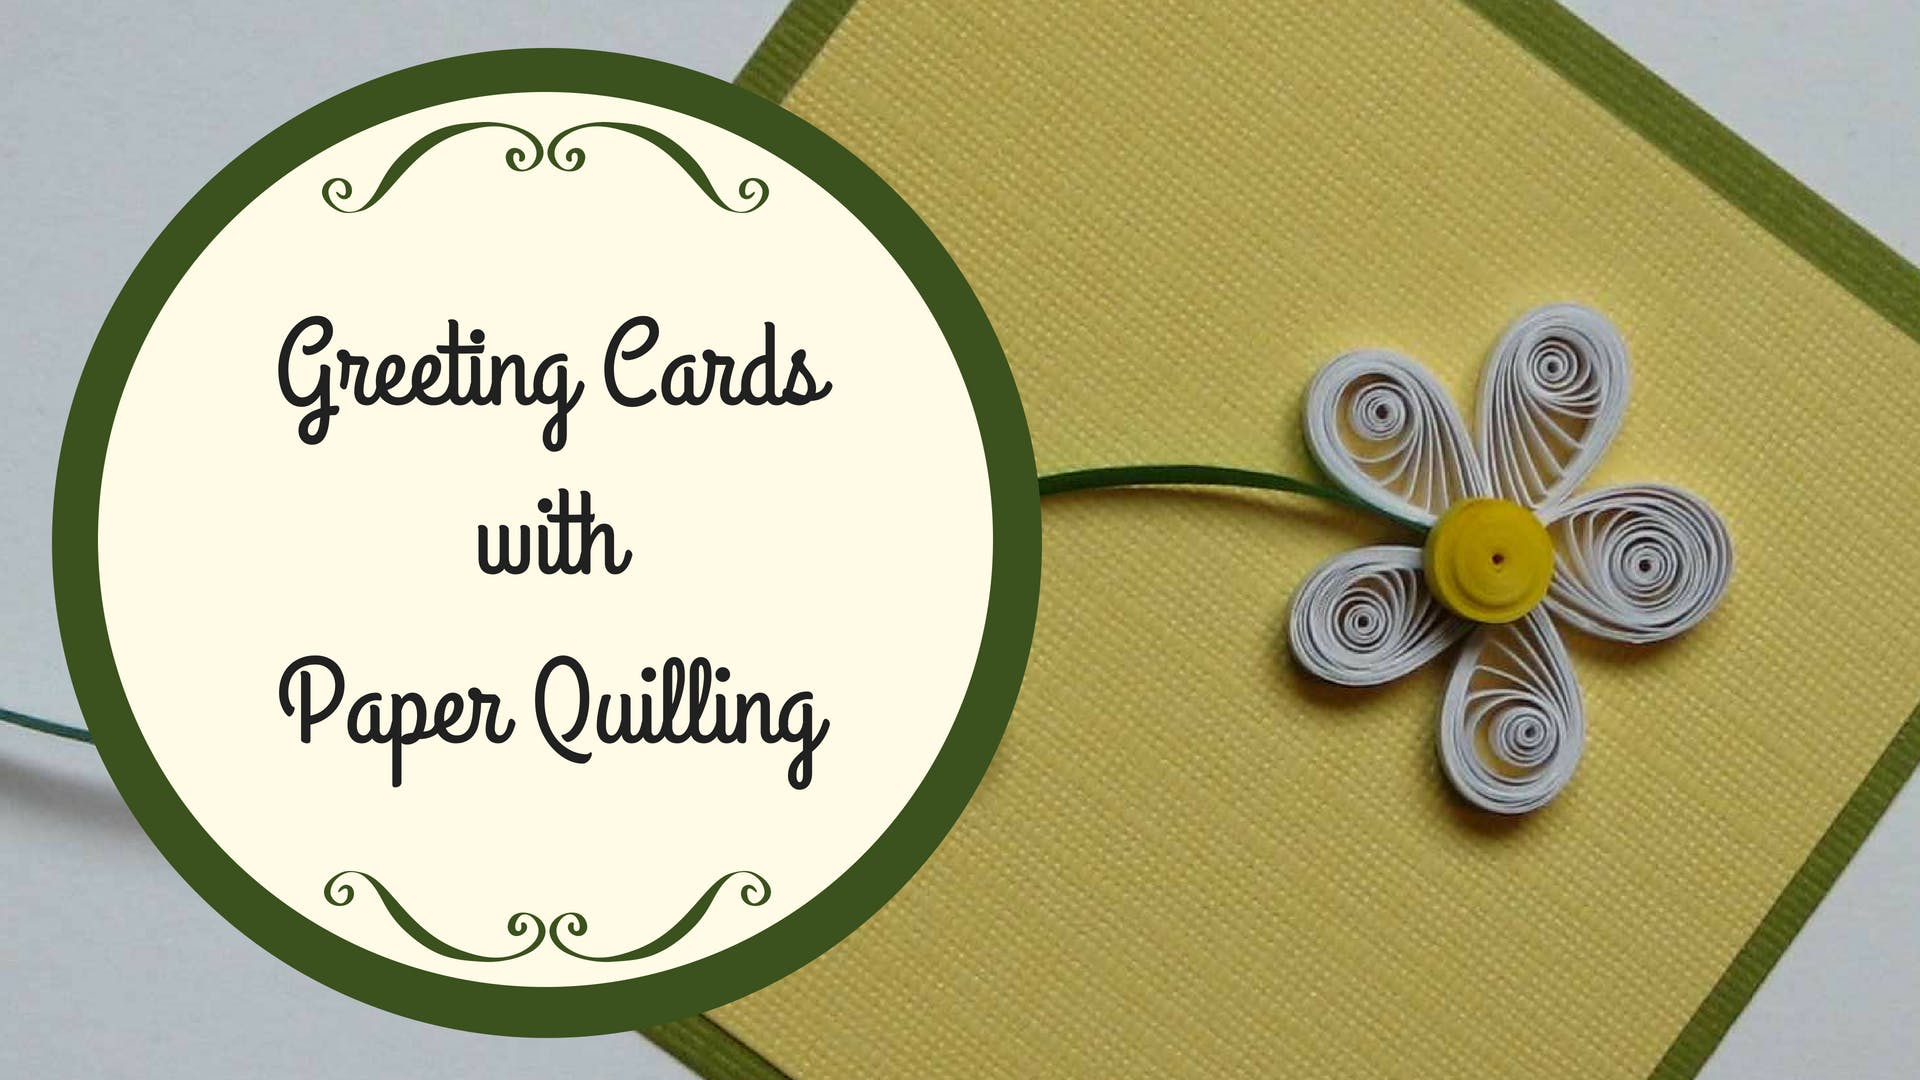 Greeting Cards With Paper Quilling 14 Nov 2018